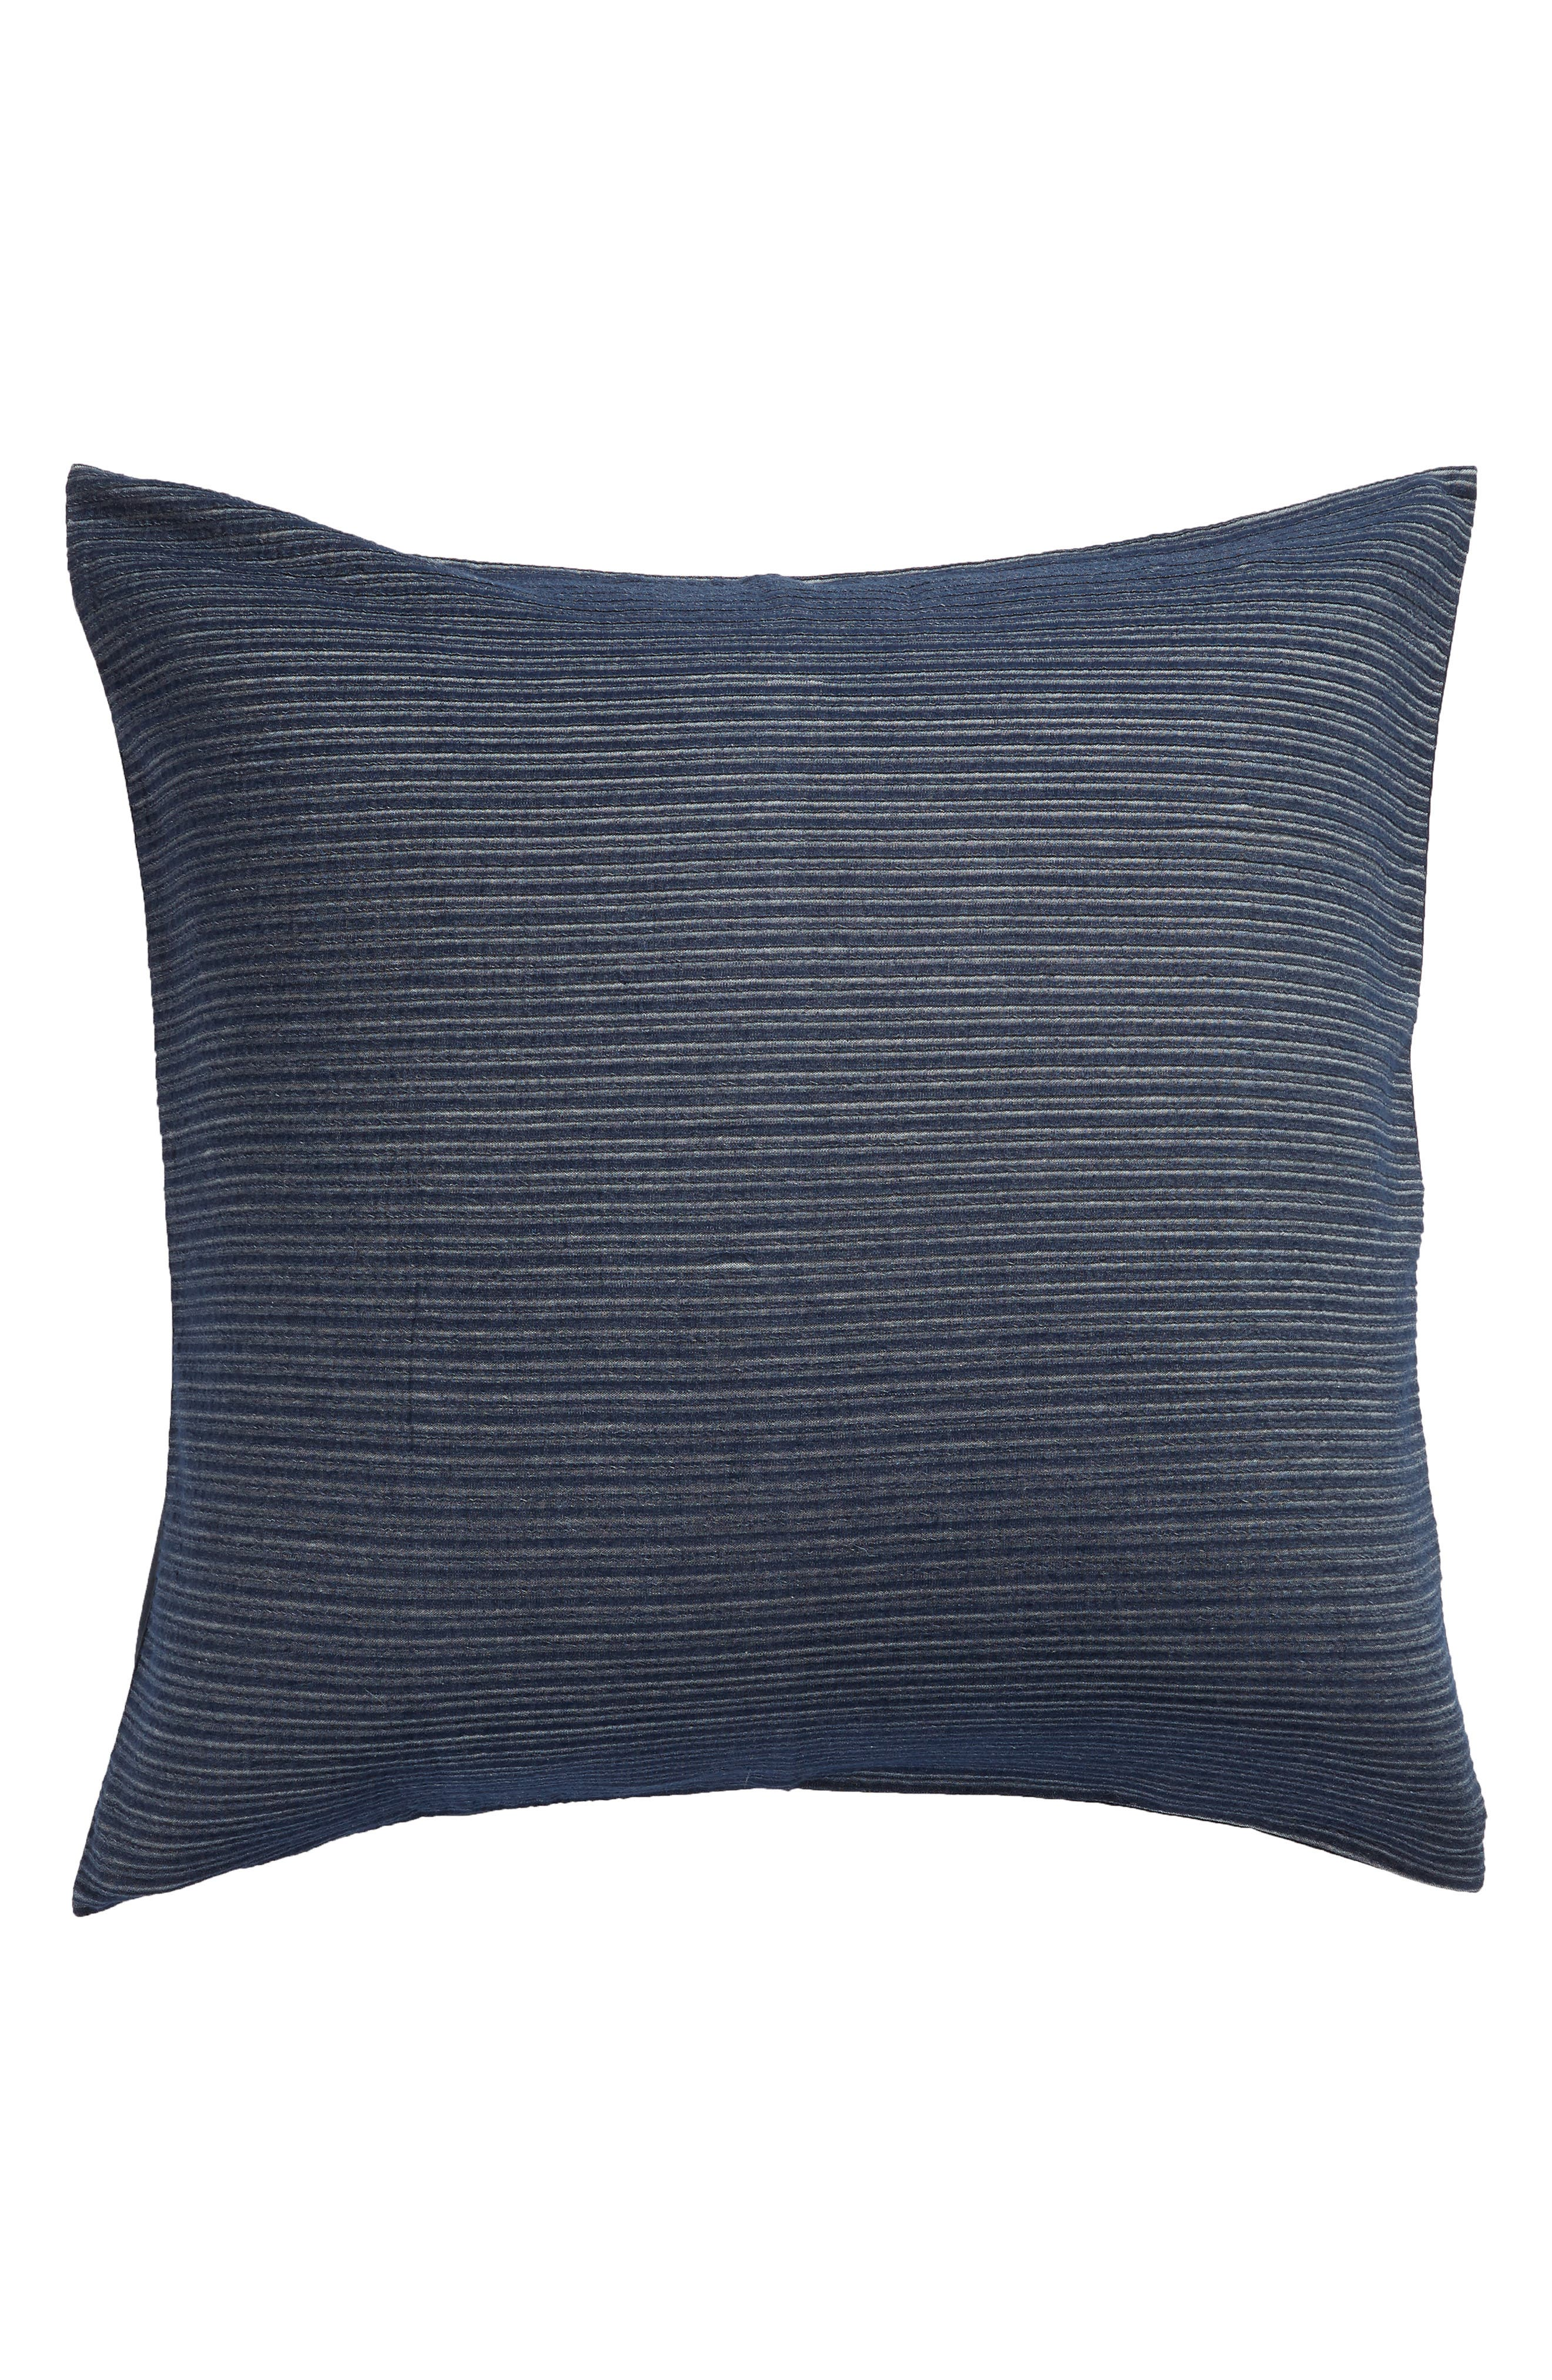 TREASURE & BOND, Textured Stripe Euro Sham, Main thumbnail 1, color, NAVY BLUE